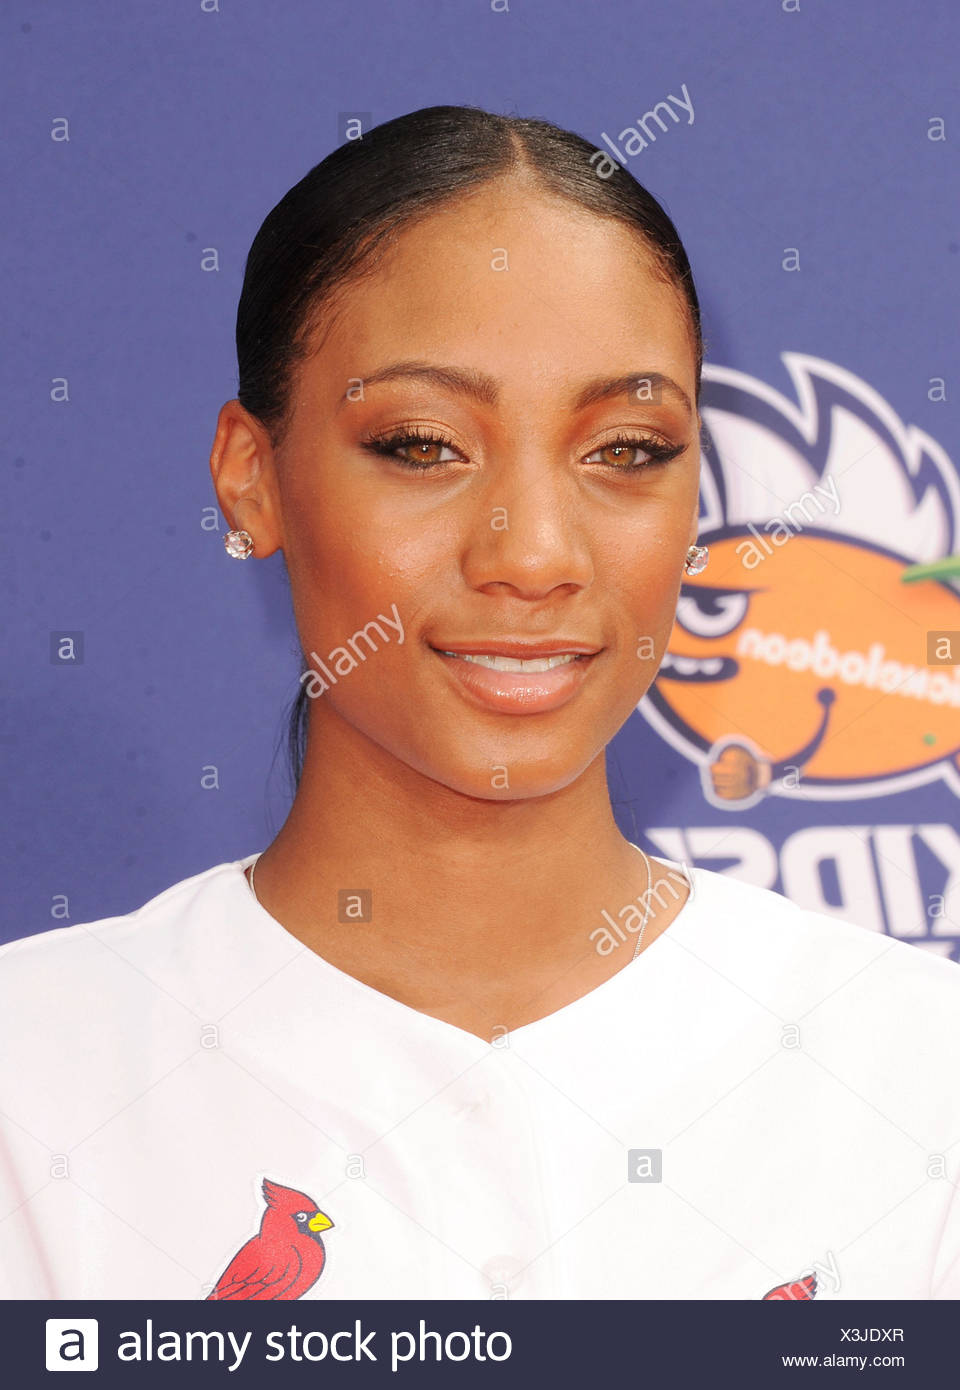 Jugador de béisbol Mo'ne Davis llega a la Nickelodeon Kids' Choice Sports Awards 2015 en el Pauley Pavilion de UCLA el 16 de julio de 2015 en Westwood, California., Additional-Rights-juegos-NA Imagen De Stock